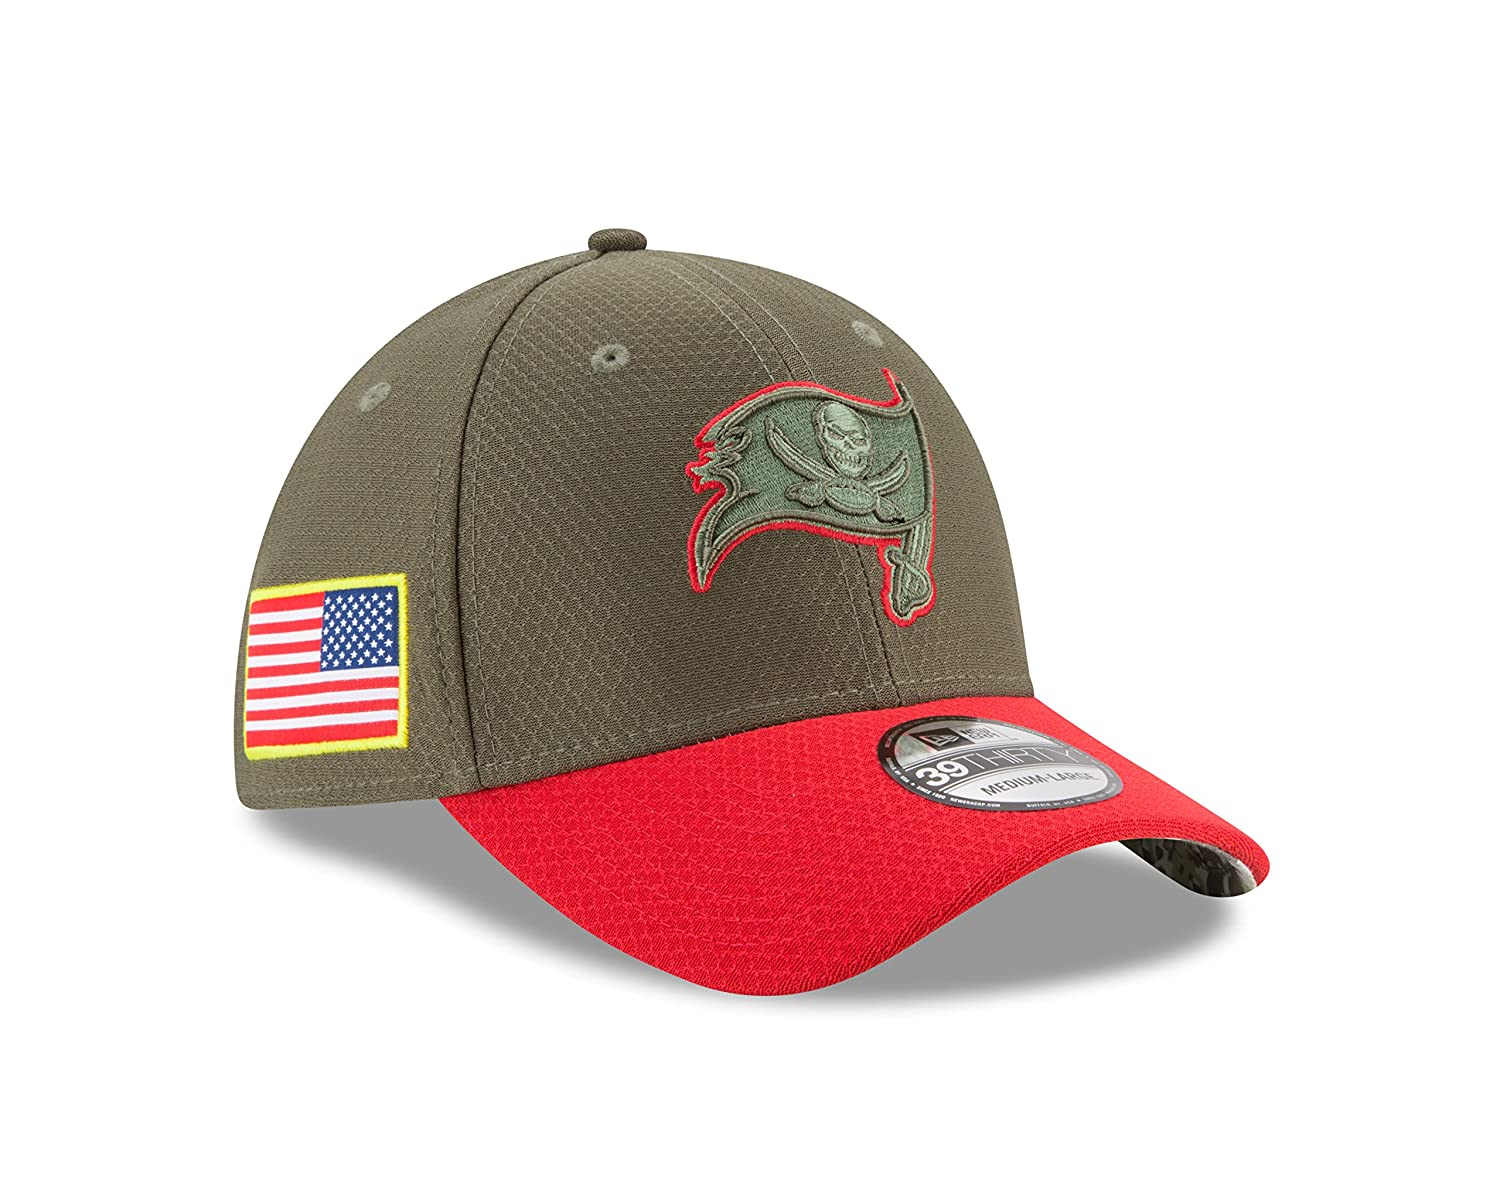 huge discount fef03 e31a6 ... promo code for amazon tampa bay buccaneers new era 2017 salute to service  39thirty flex hat